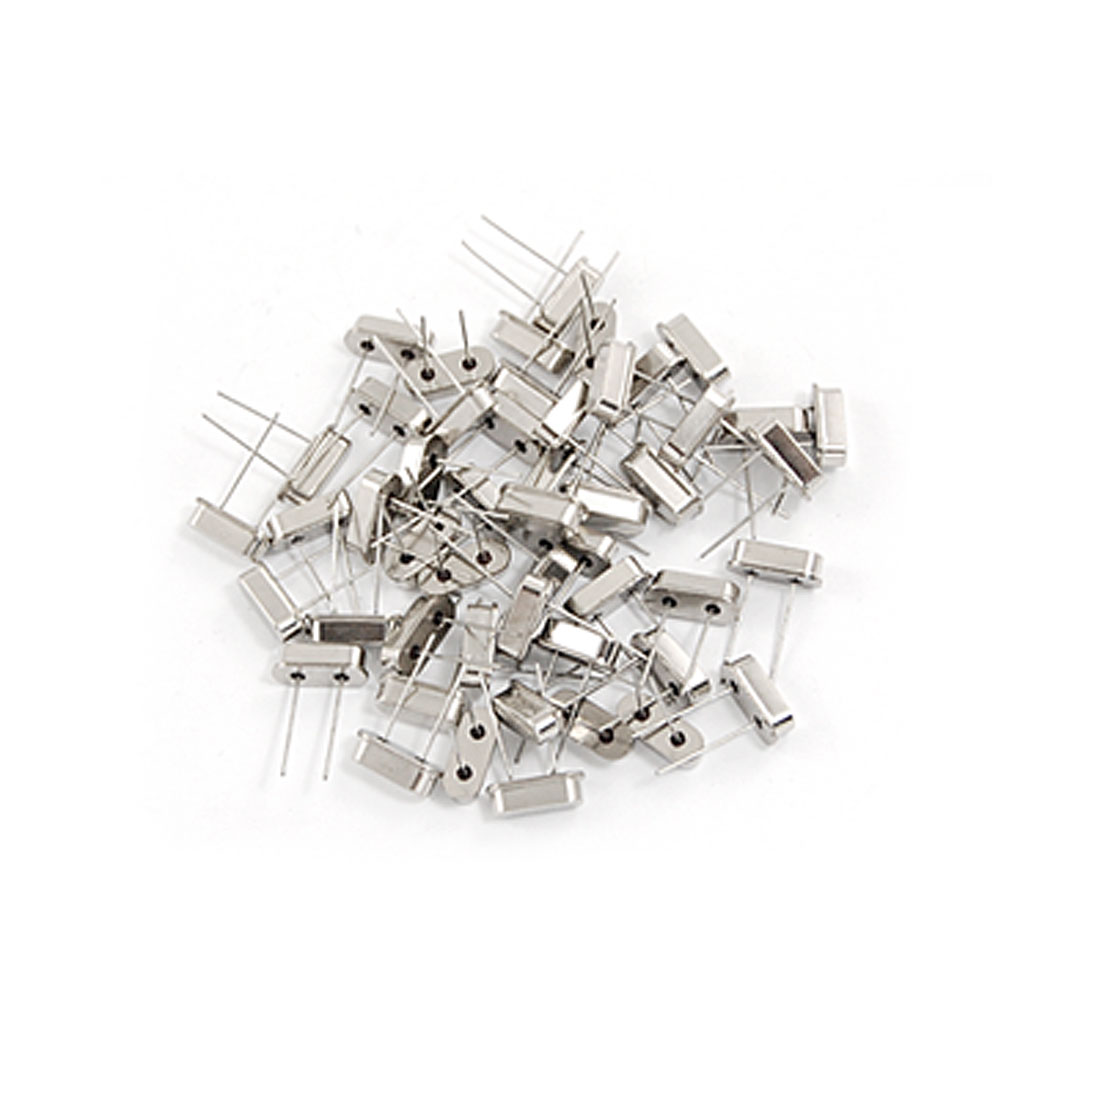 50 Pcs 3.579545MHz DIP Mount Type Quartz Crystal for PC